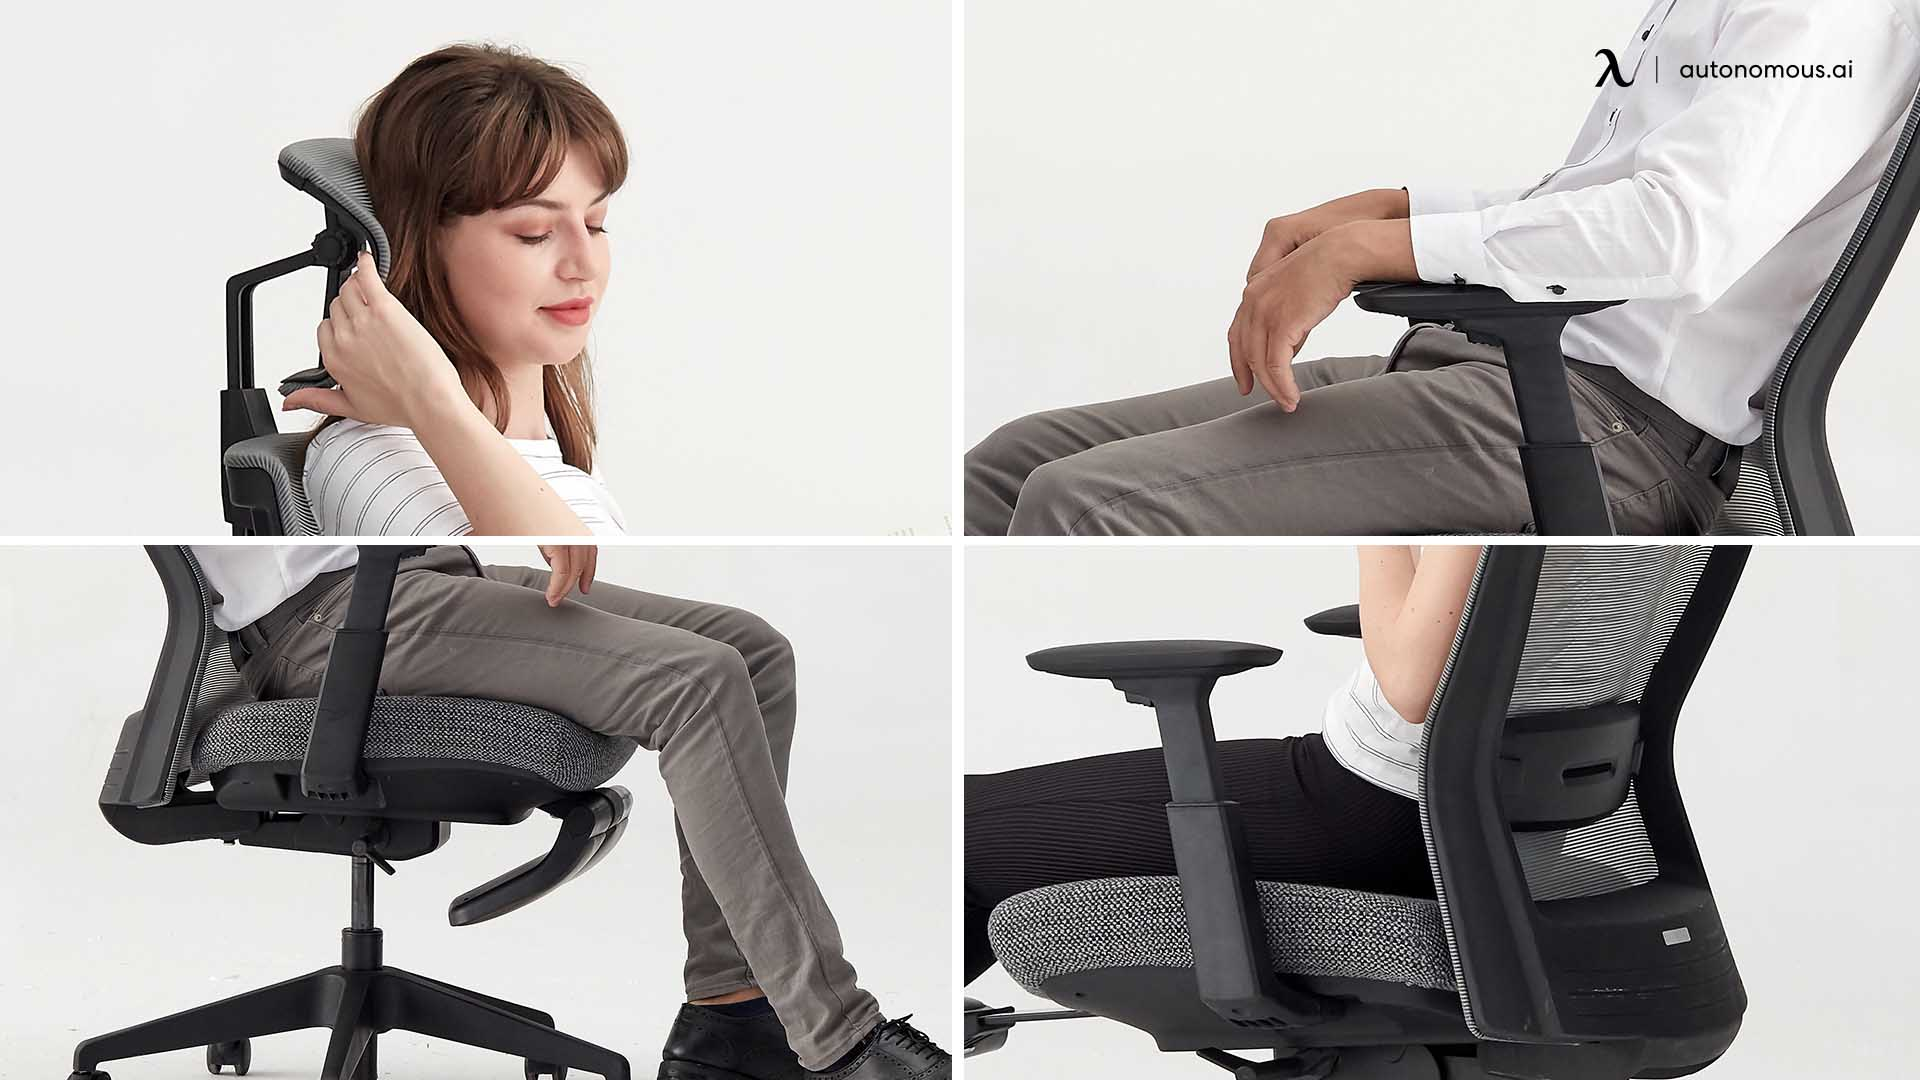 Don't Overspend on Ergonomic Products